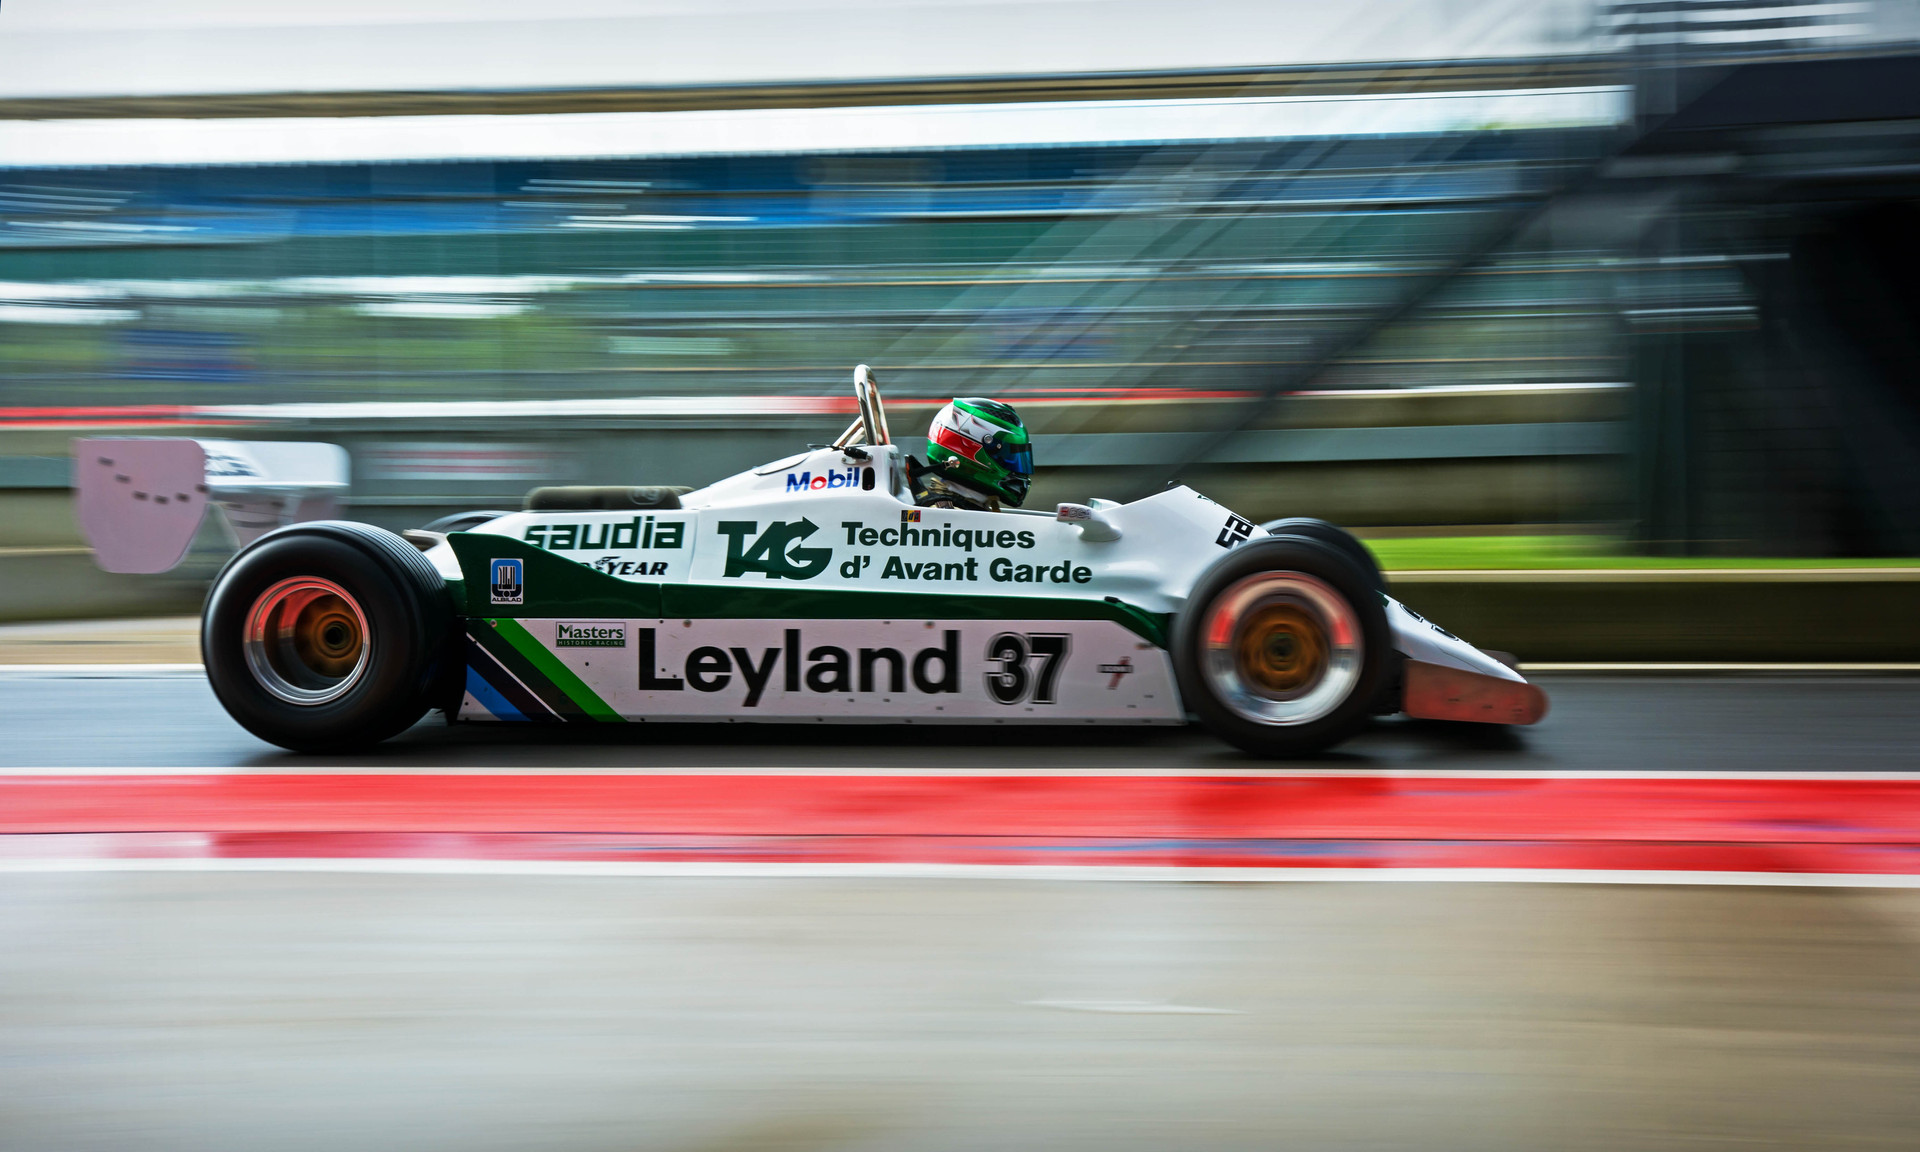 Christoph 'd'Ansembourg's 1981 Williams FW07C at the 2018 Silverstone Classic Preview Day